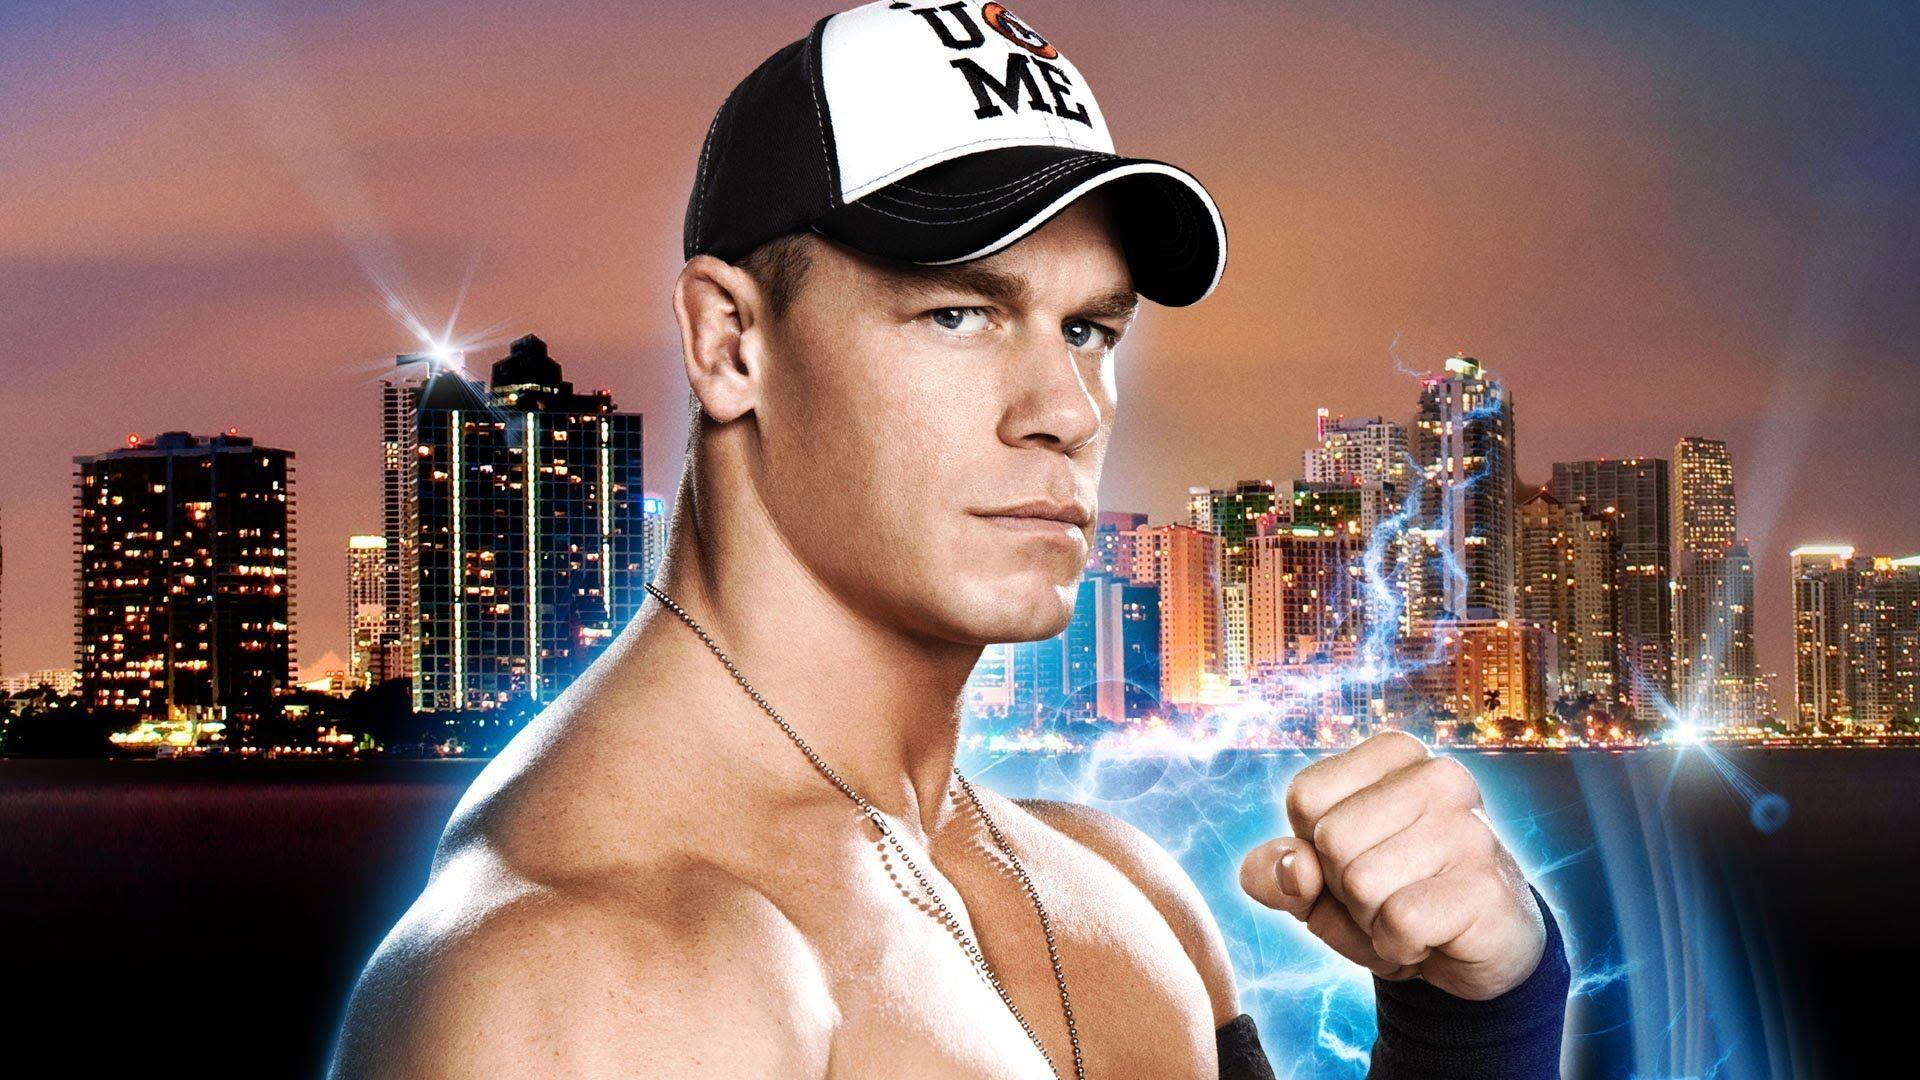 WWE John Cena Mobile Wallpapers 2017 - Wallpaper Cave